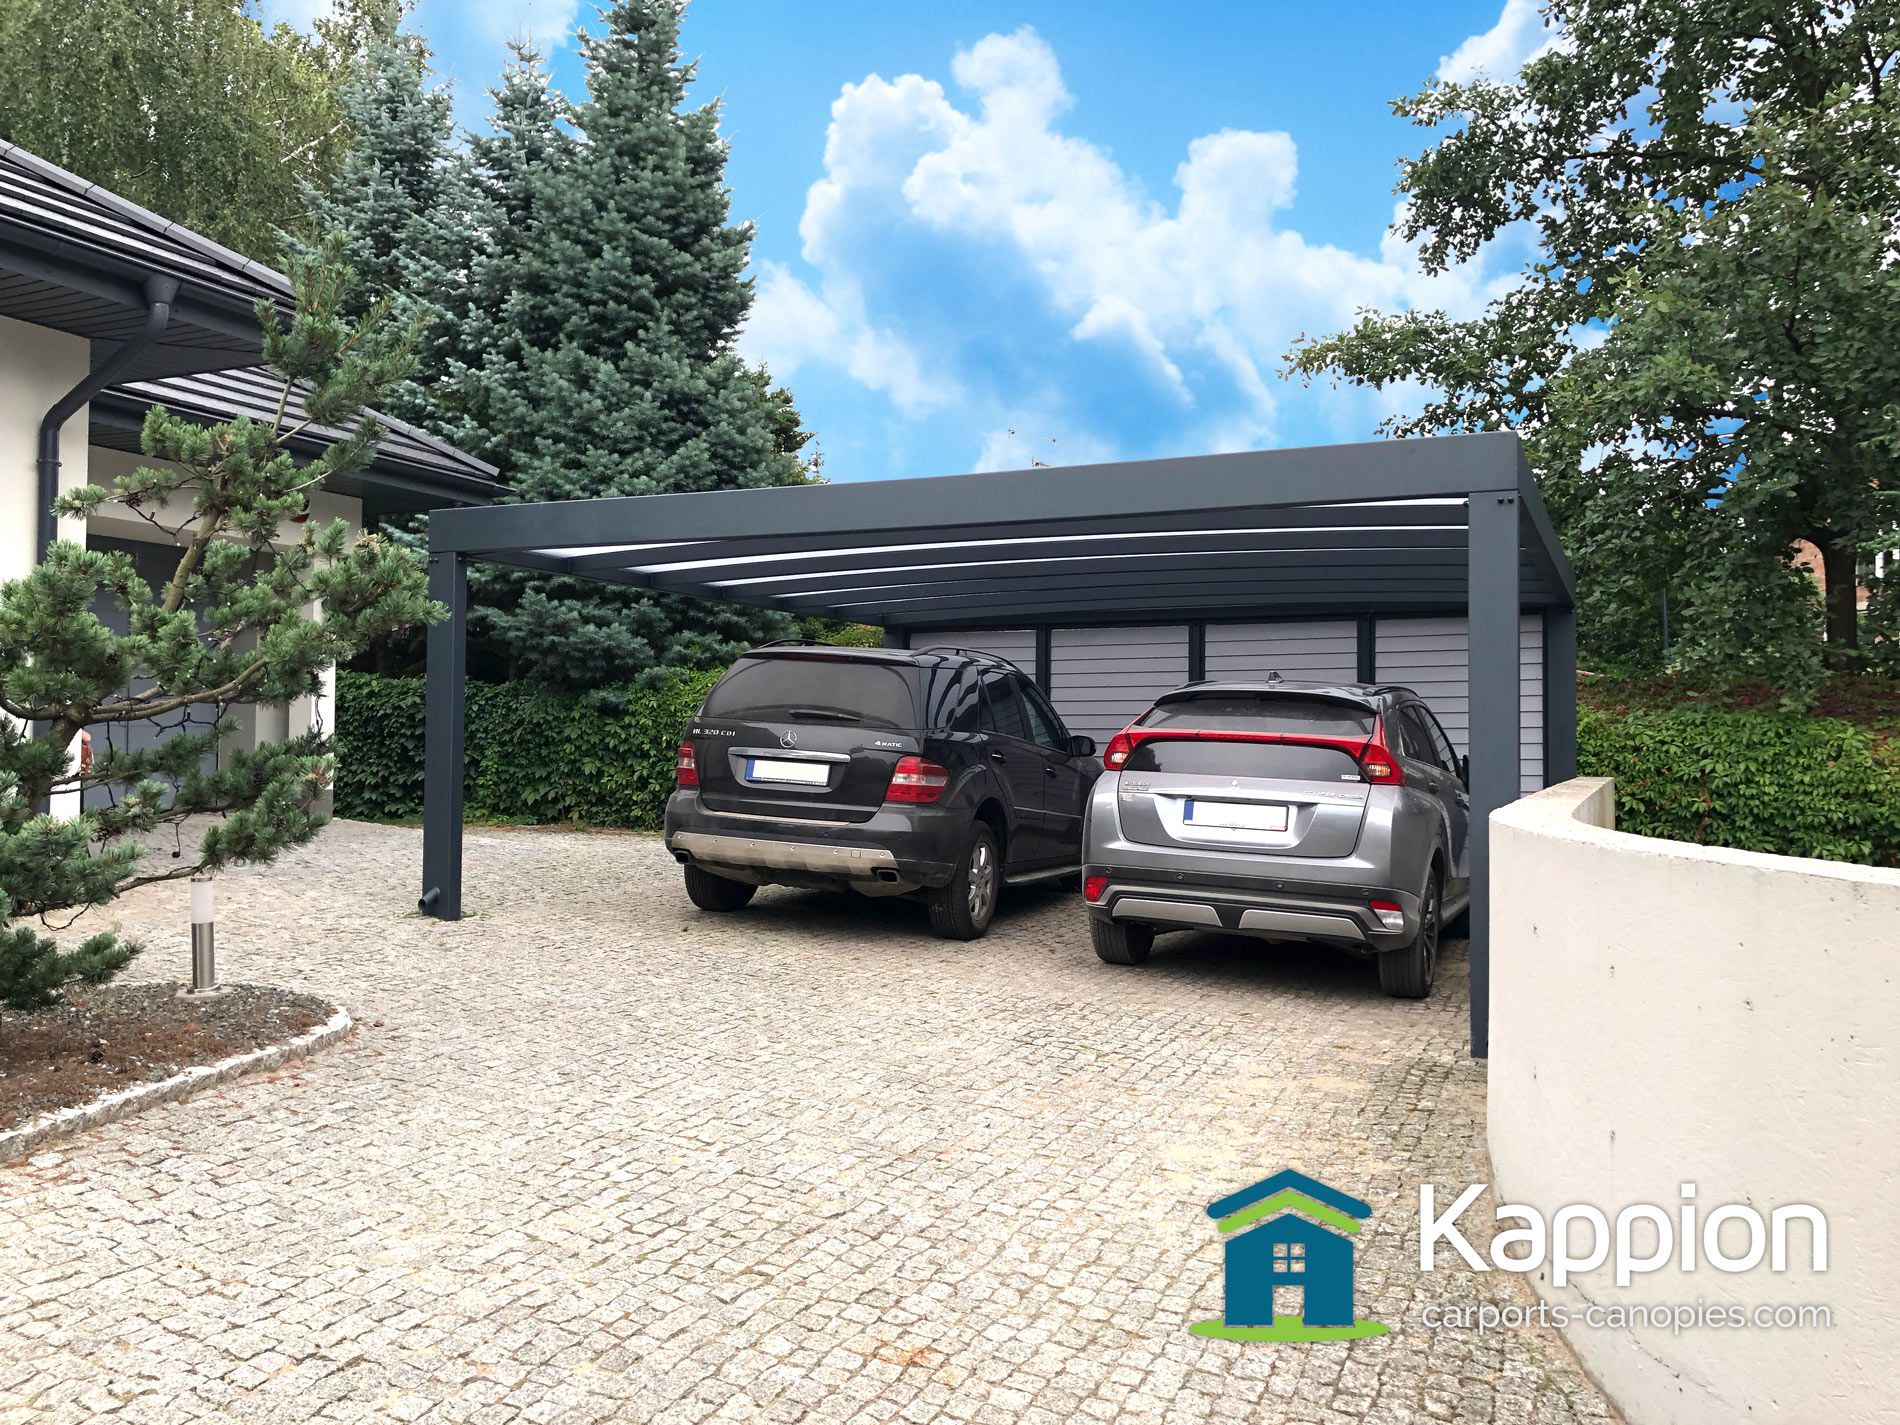 Hand-made Carports & Canopies | Carport canopy, Commercial ...